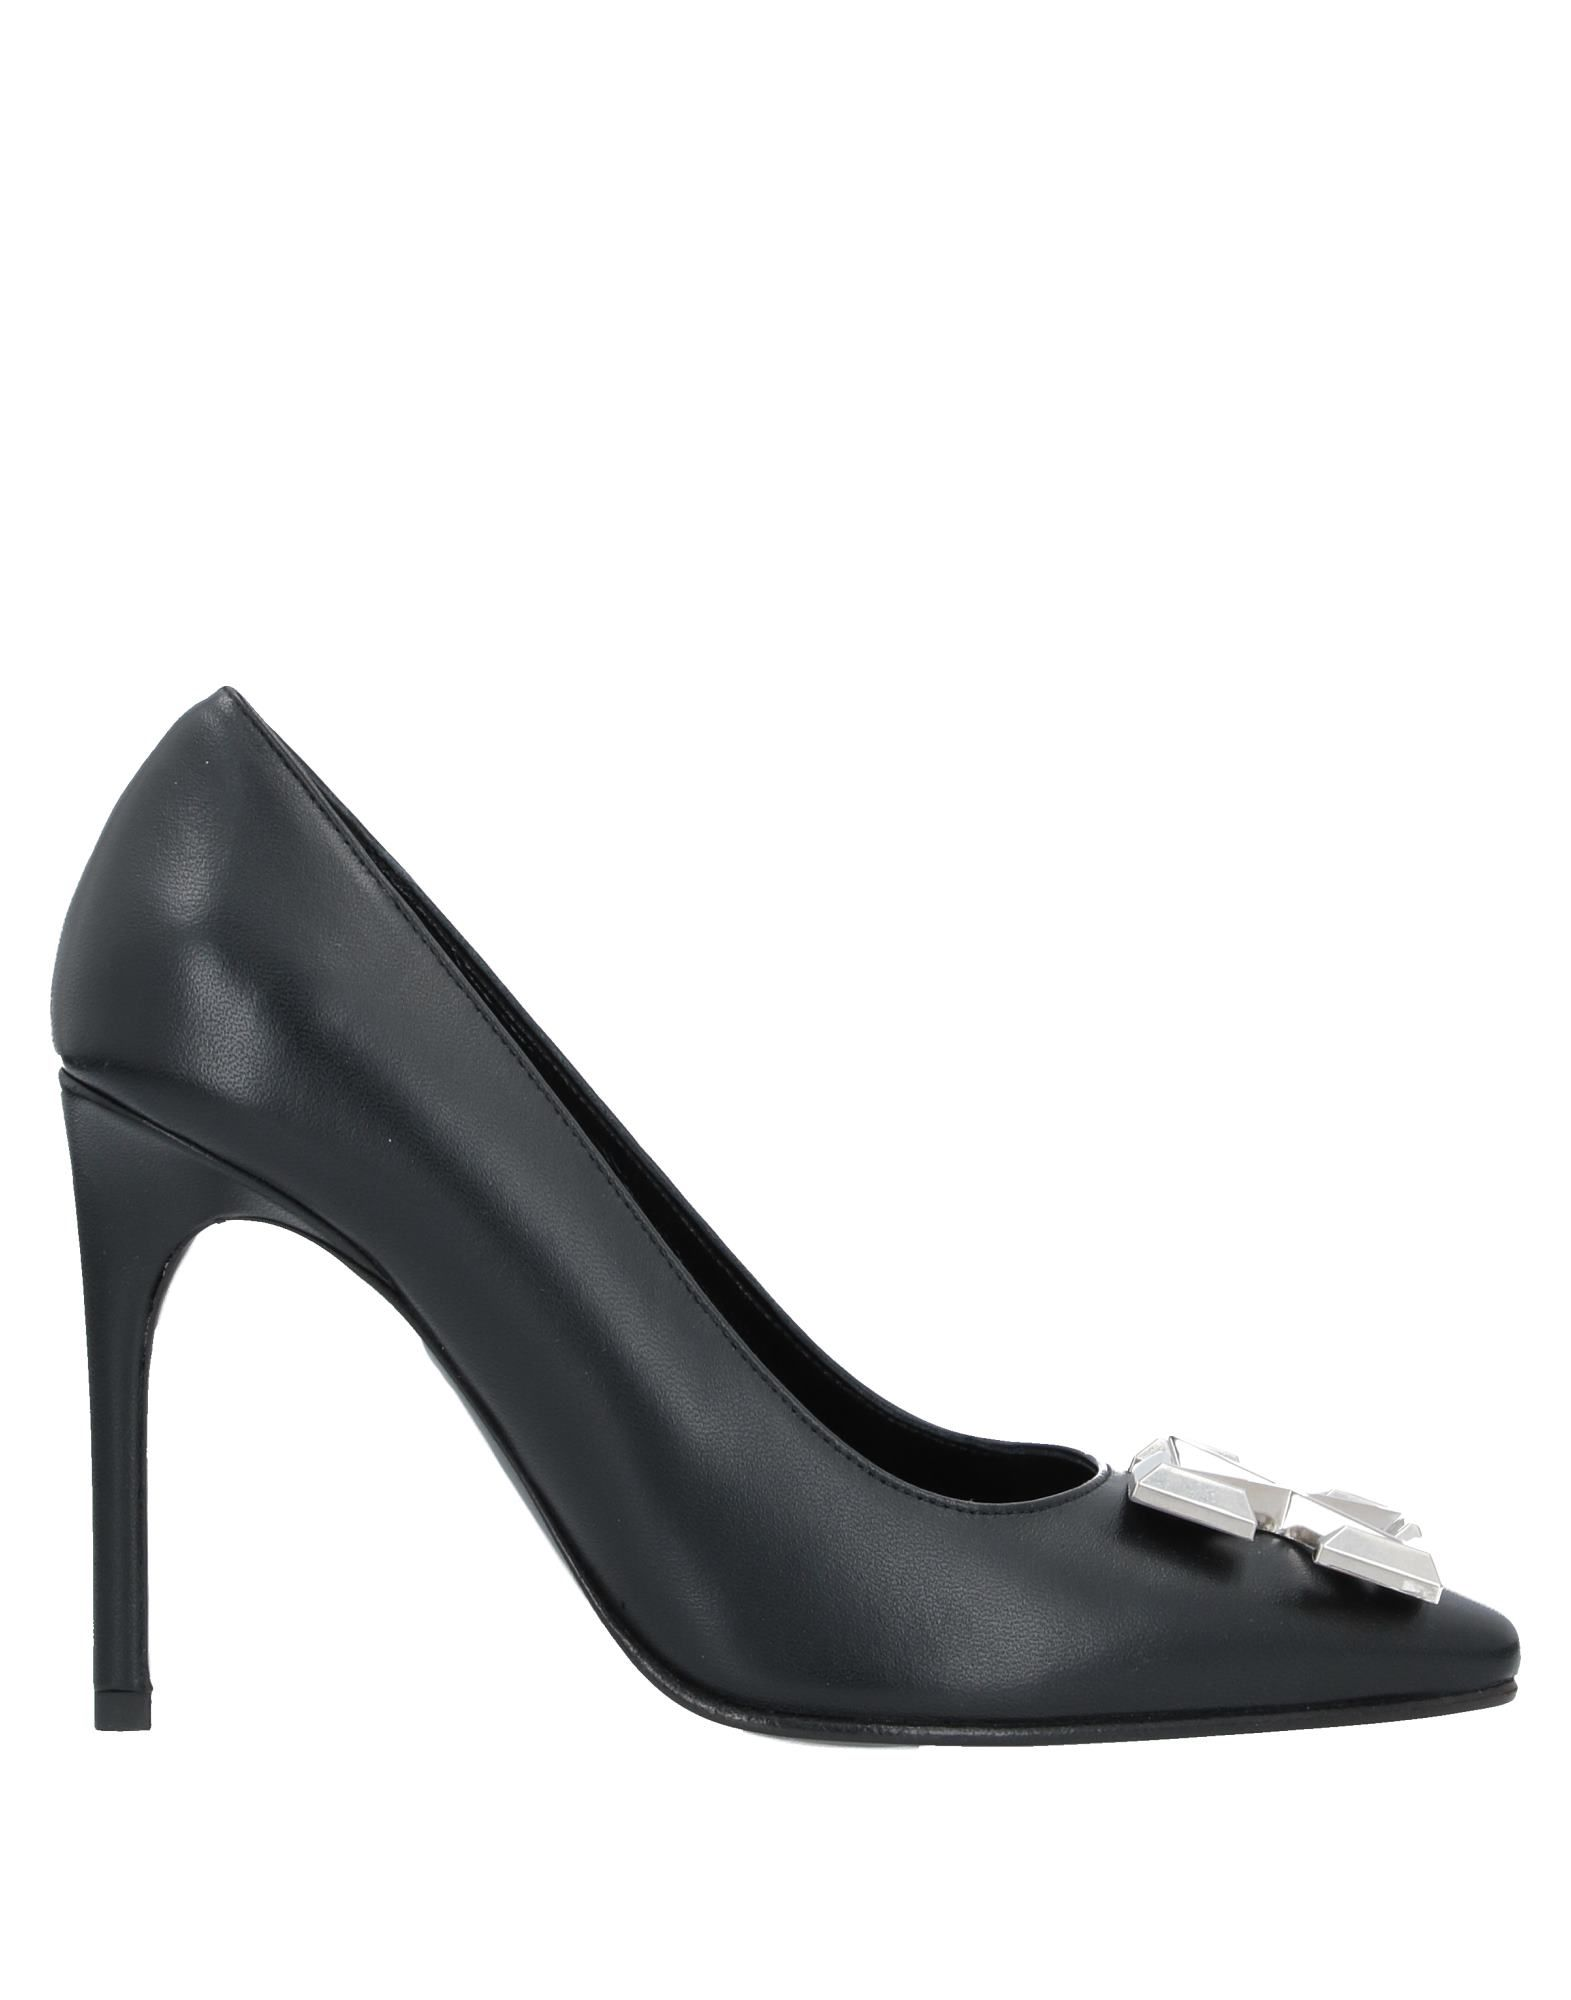 OFF-WHITE™ Pumps. leather, metal applications, solid color, round toeline, leather lining, stiletto heel, leather sole, contains non-textile parts of animal origin, small sized. Soft Leather